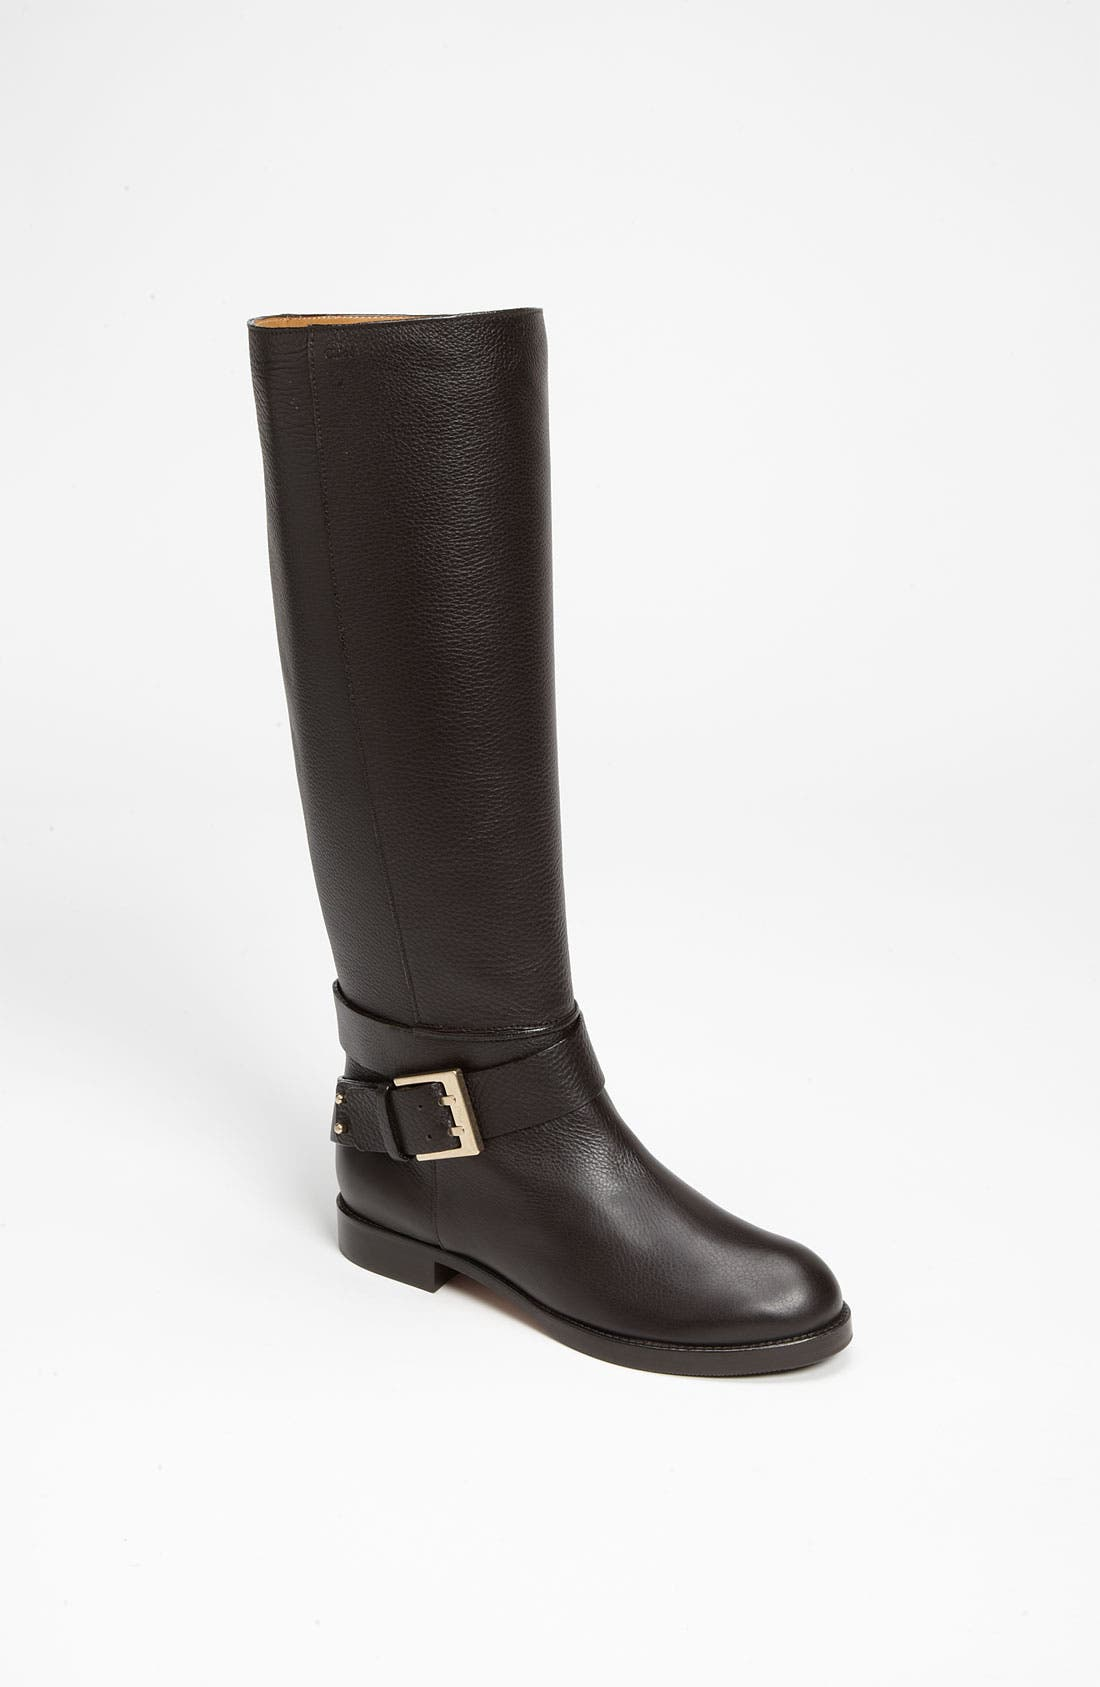 Alternate Image 1 Selected - Chloé Tall Buckle Wrap Boot